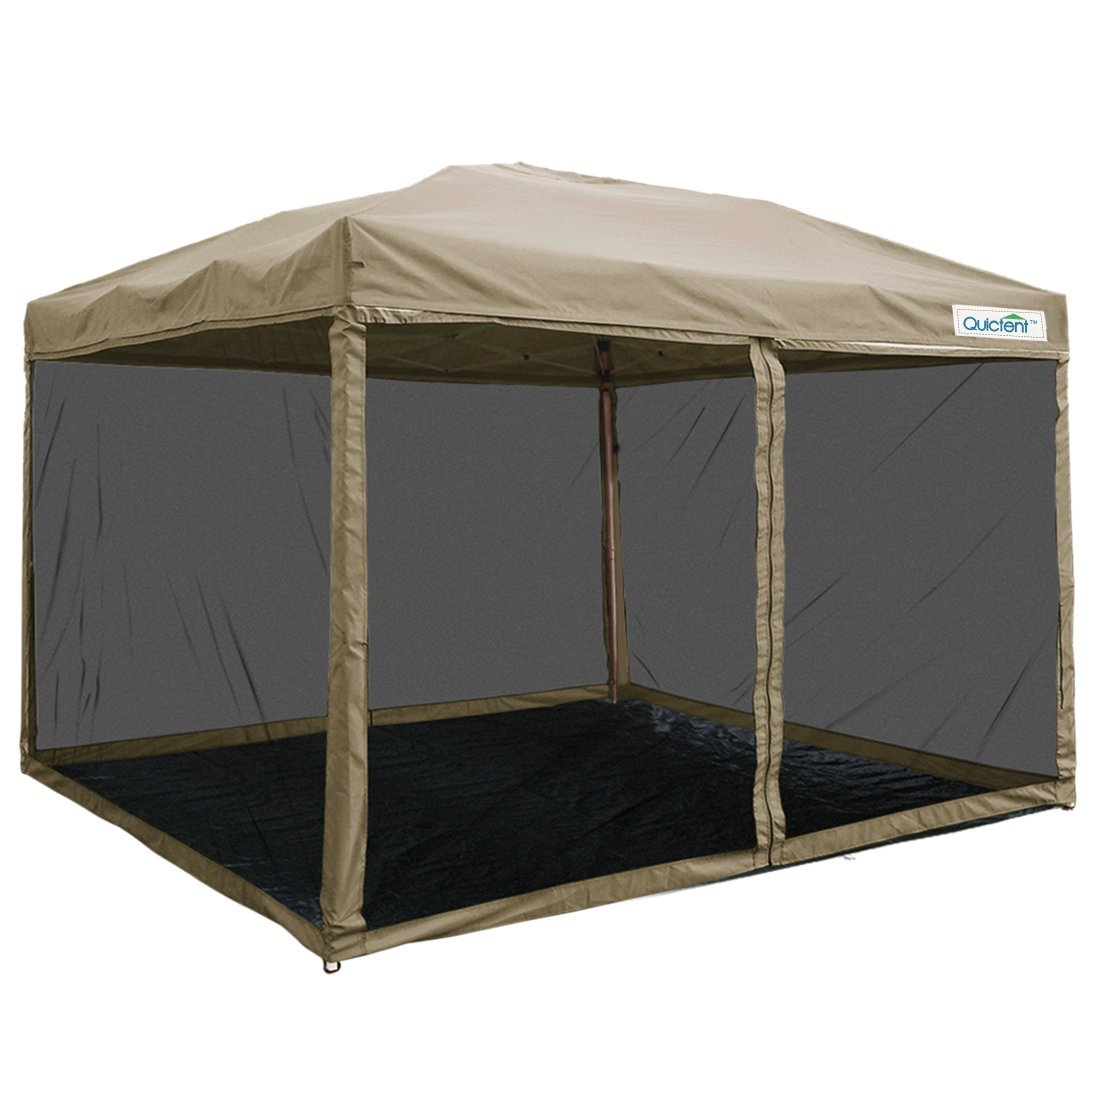 Quictent 8x8 Ez Pop up Canopy with Netting Screen House Instant Gazebo Party Tent Mesh Sides Walls With GroundSHeet Tan by ML